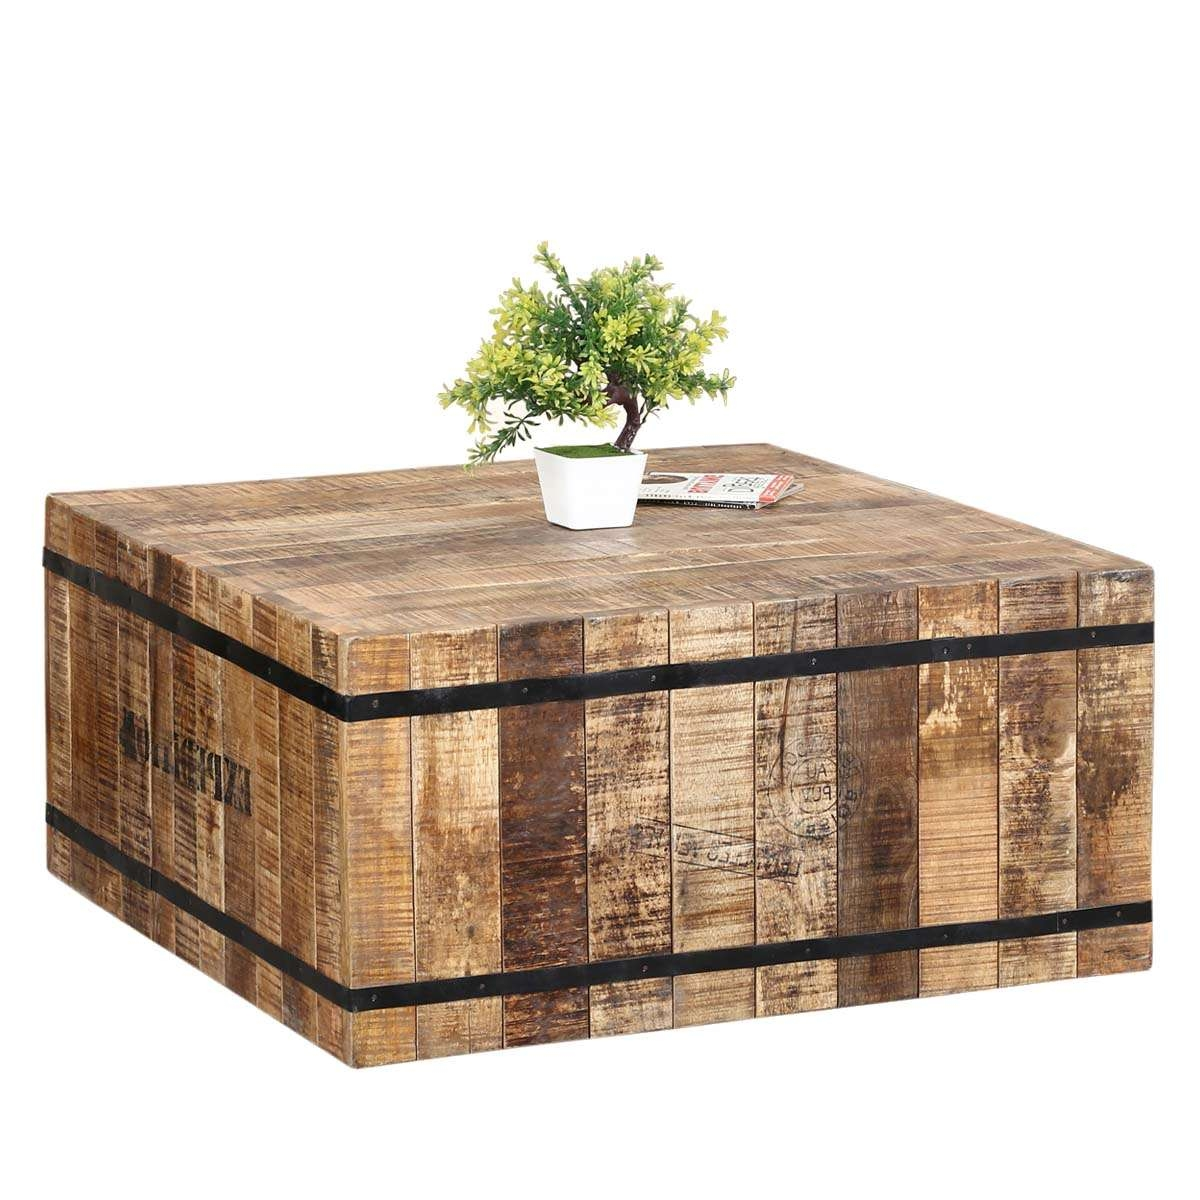 Custom Made Rustic Wood Coffee Tables Throughout Widely Used Rustic Coffee Tables (View 15 of 20)